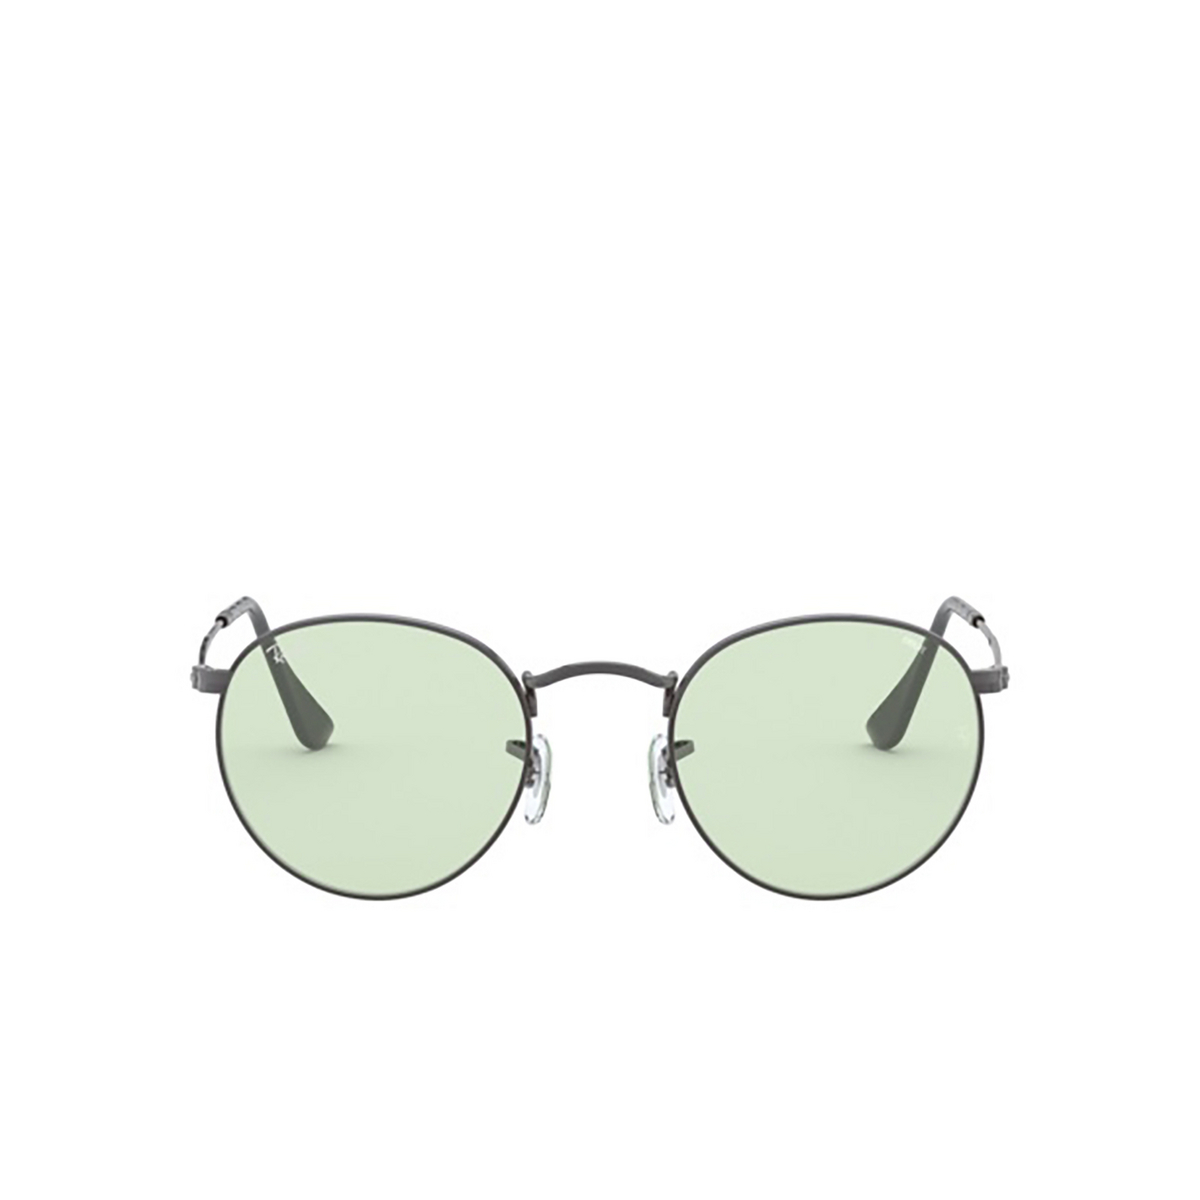 Ray-Ban® Round Sunglasses: Round Metal RB3447 color Gunmetal 004/T1 - front view.